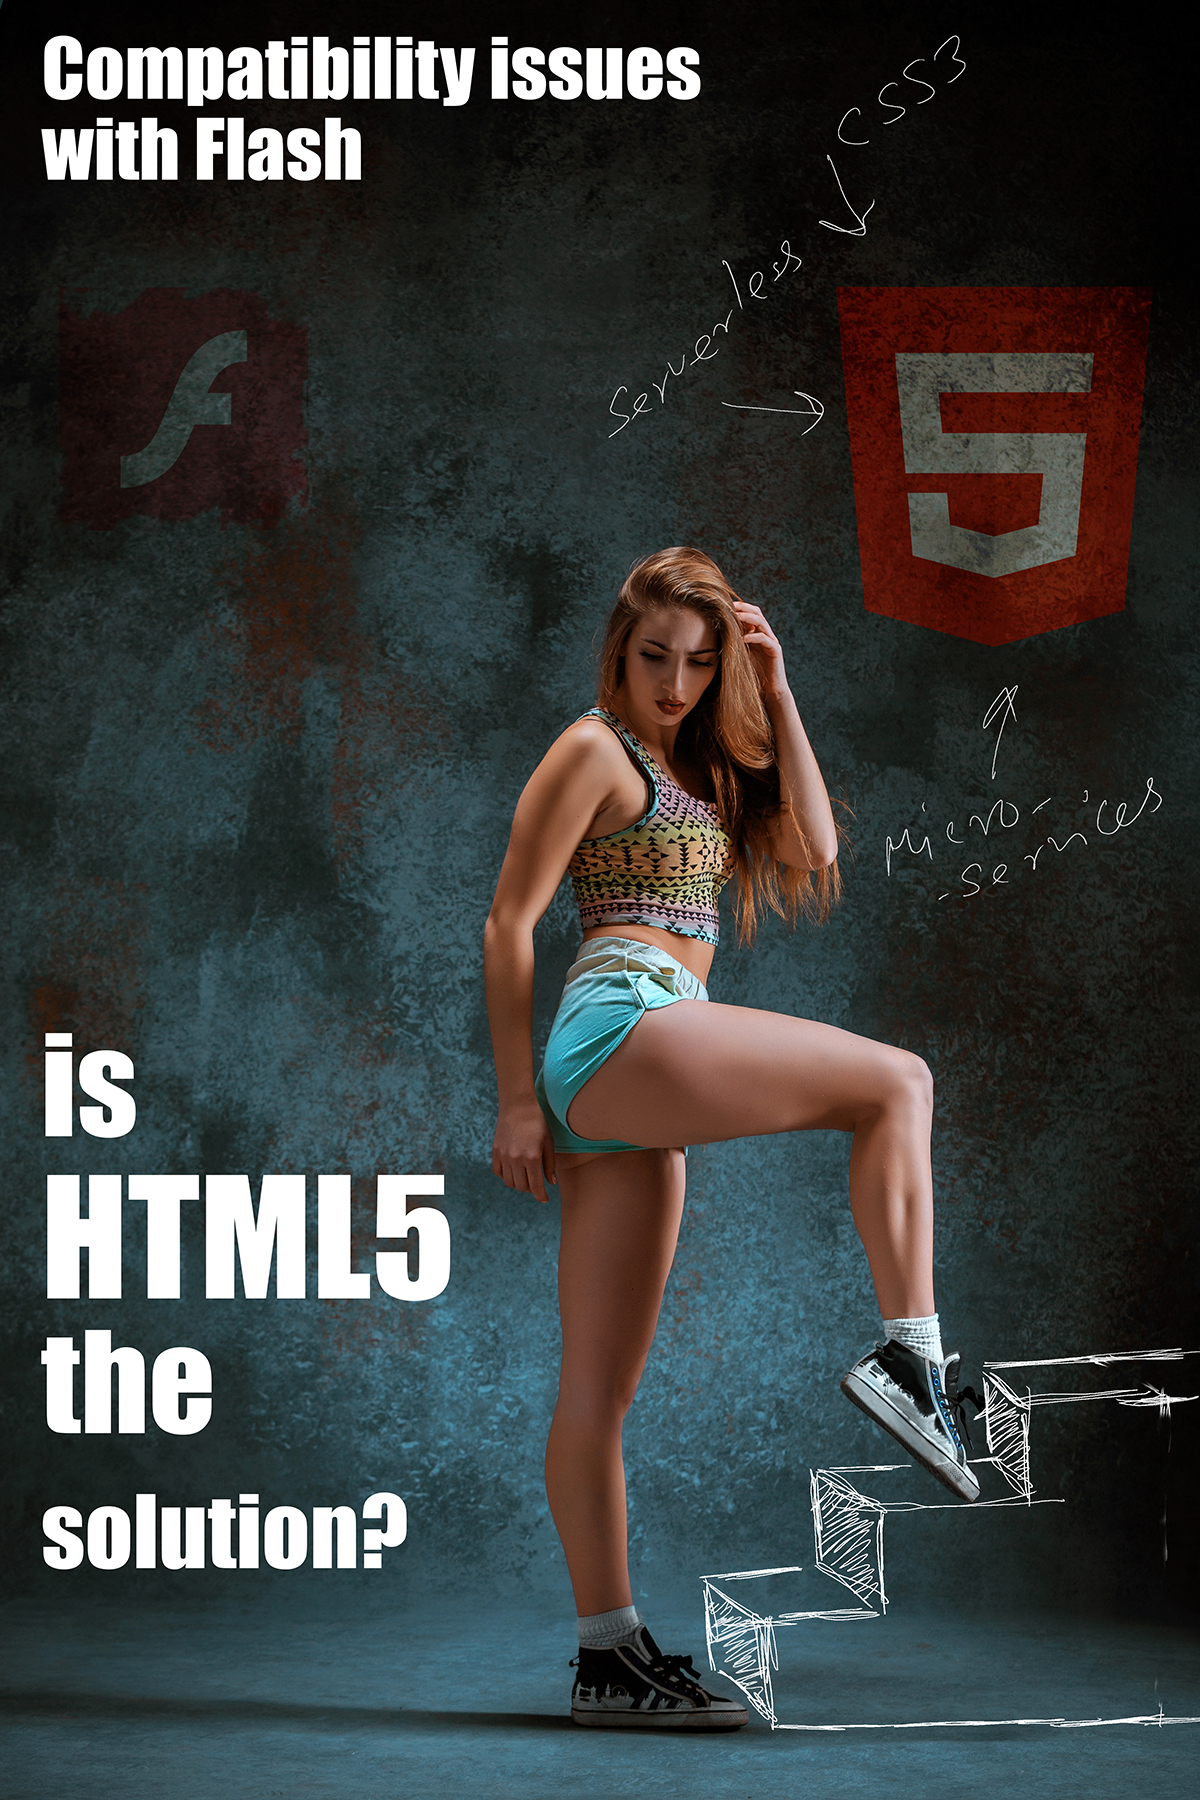 Compatibility-issues-with-Flash-is-HTML5-the-solution